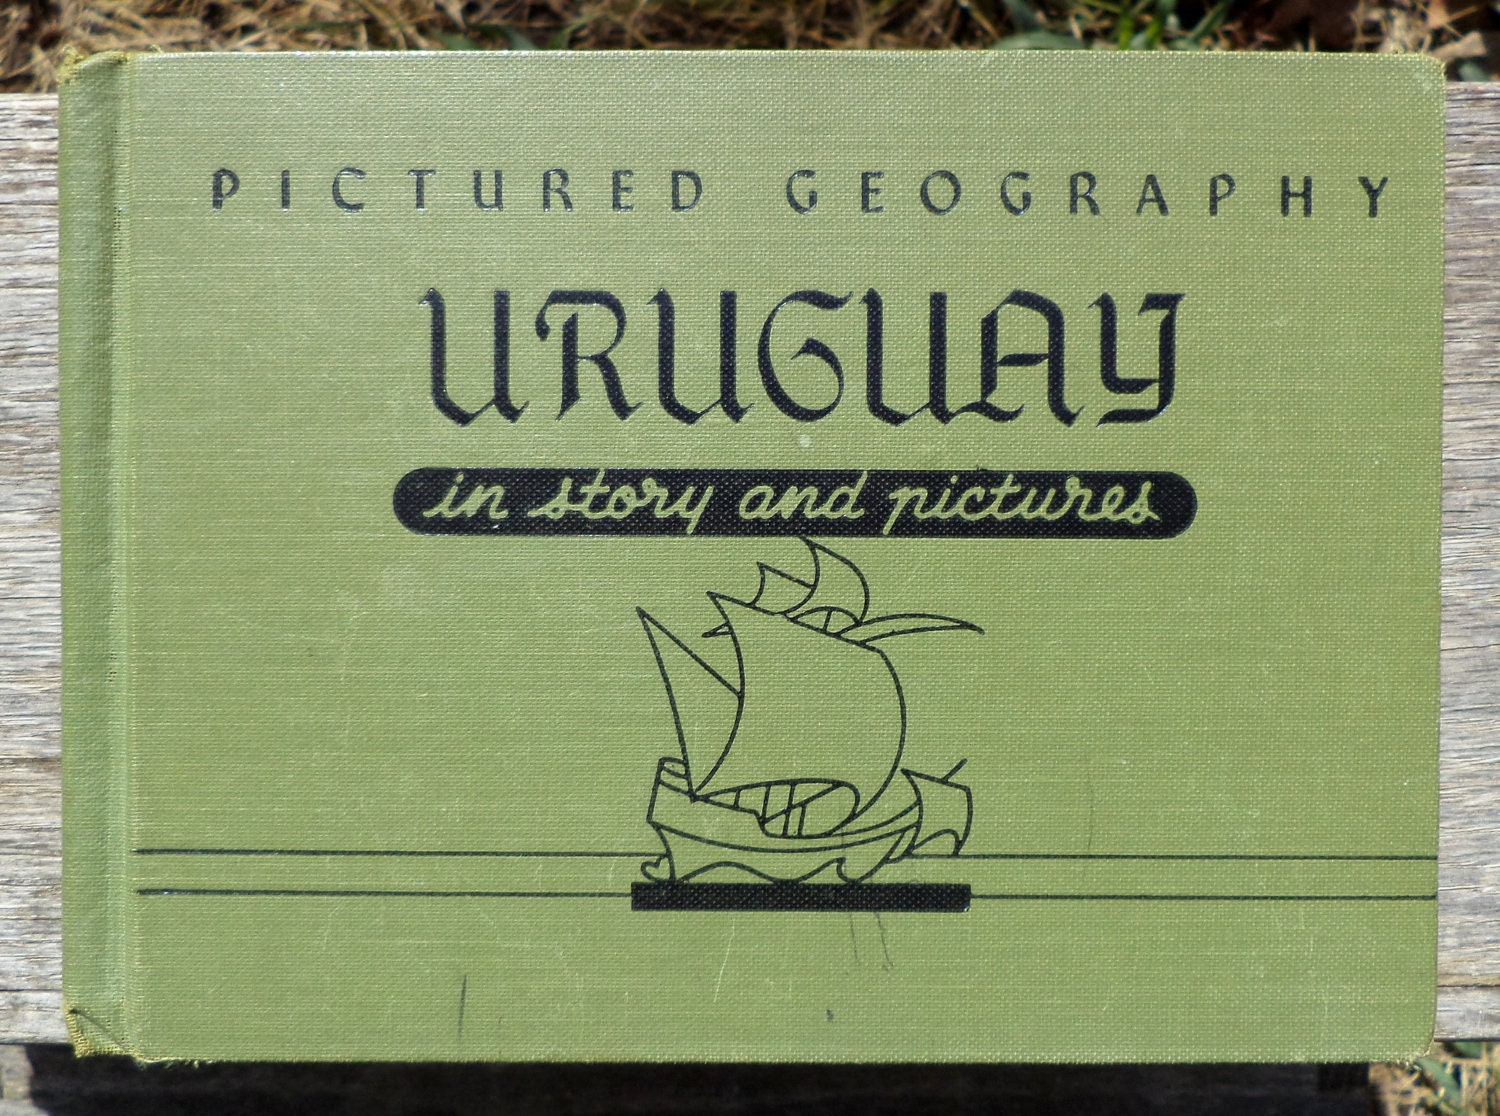 Vintage Children's Book -Uruguay in Story and Pictures - by Lois Donaldson - Pictures by Kurt Wiese